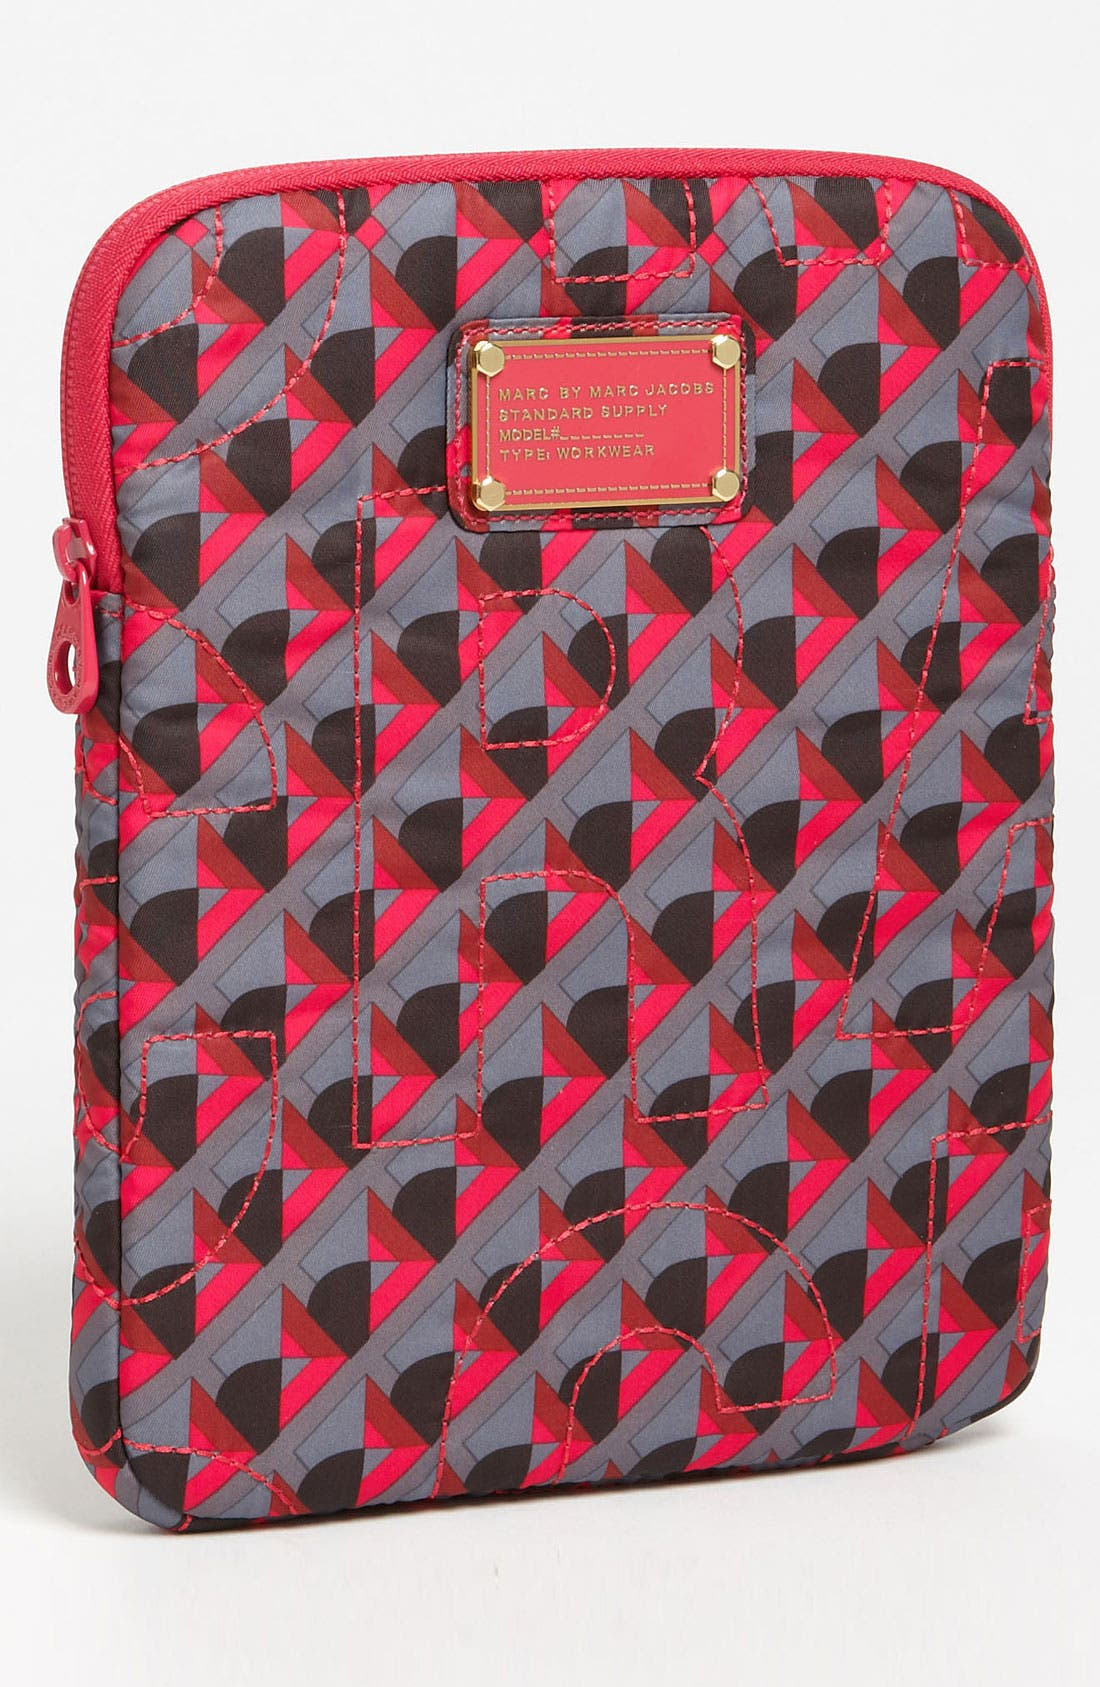 MARC BY MARC JACOBS 'Pretty Nylon' Tablet Case, Main, color, 082